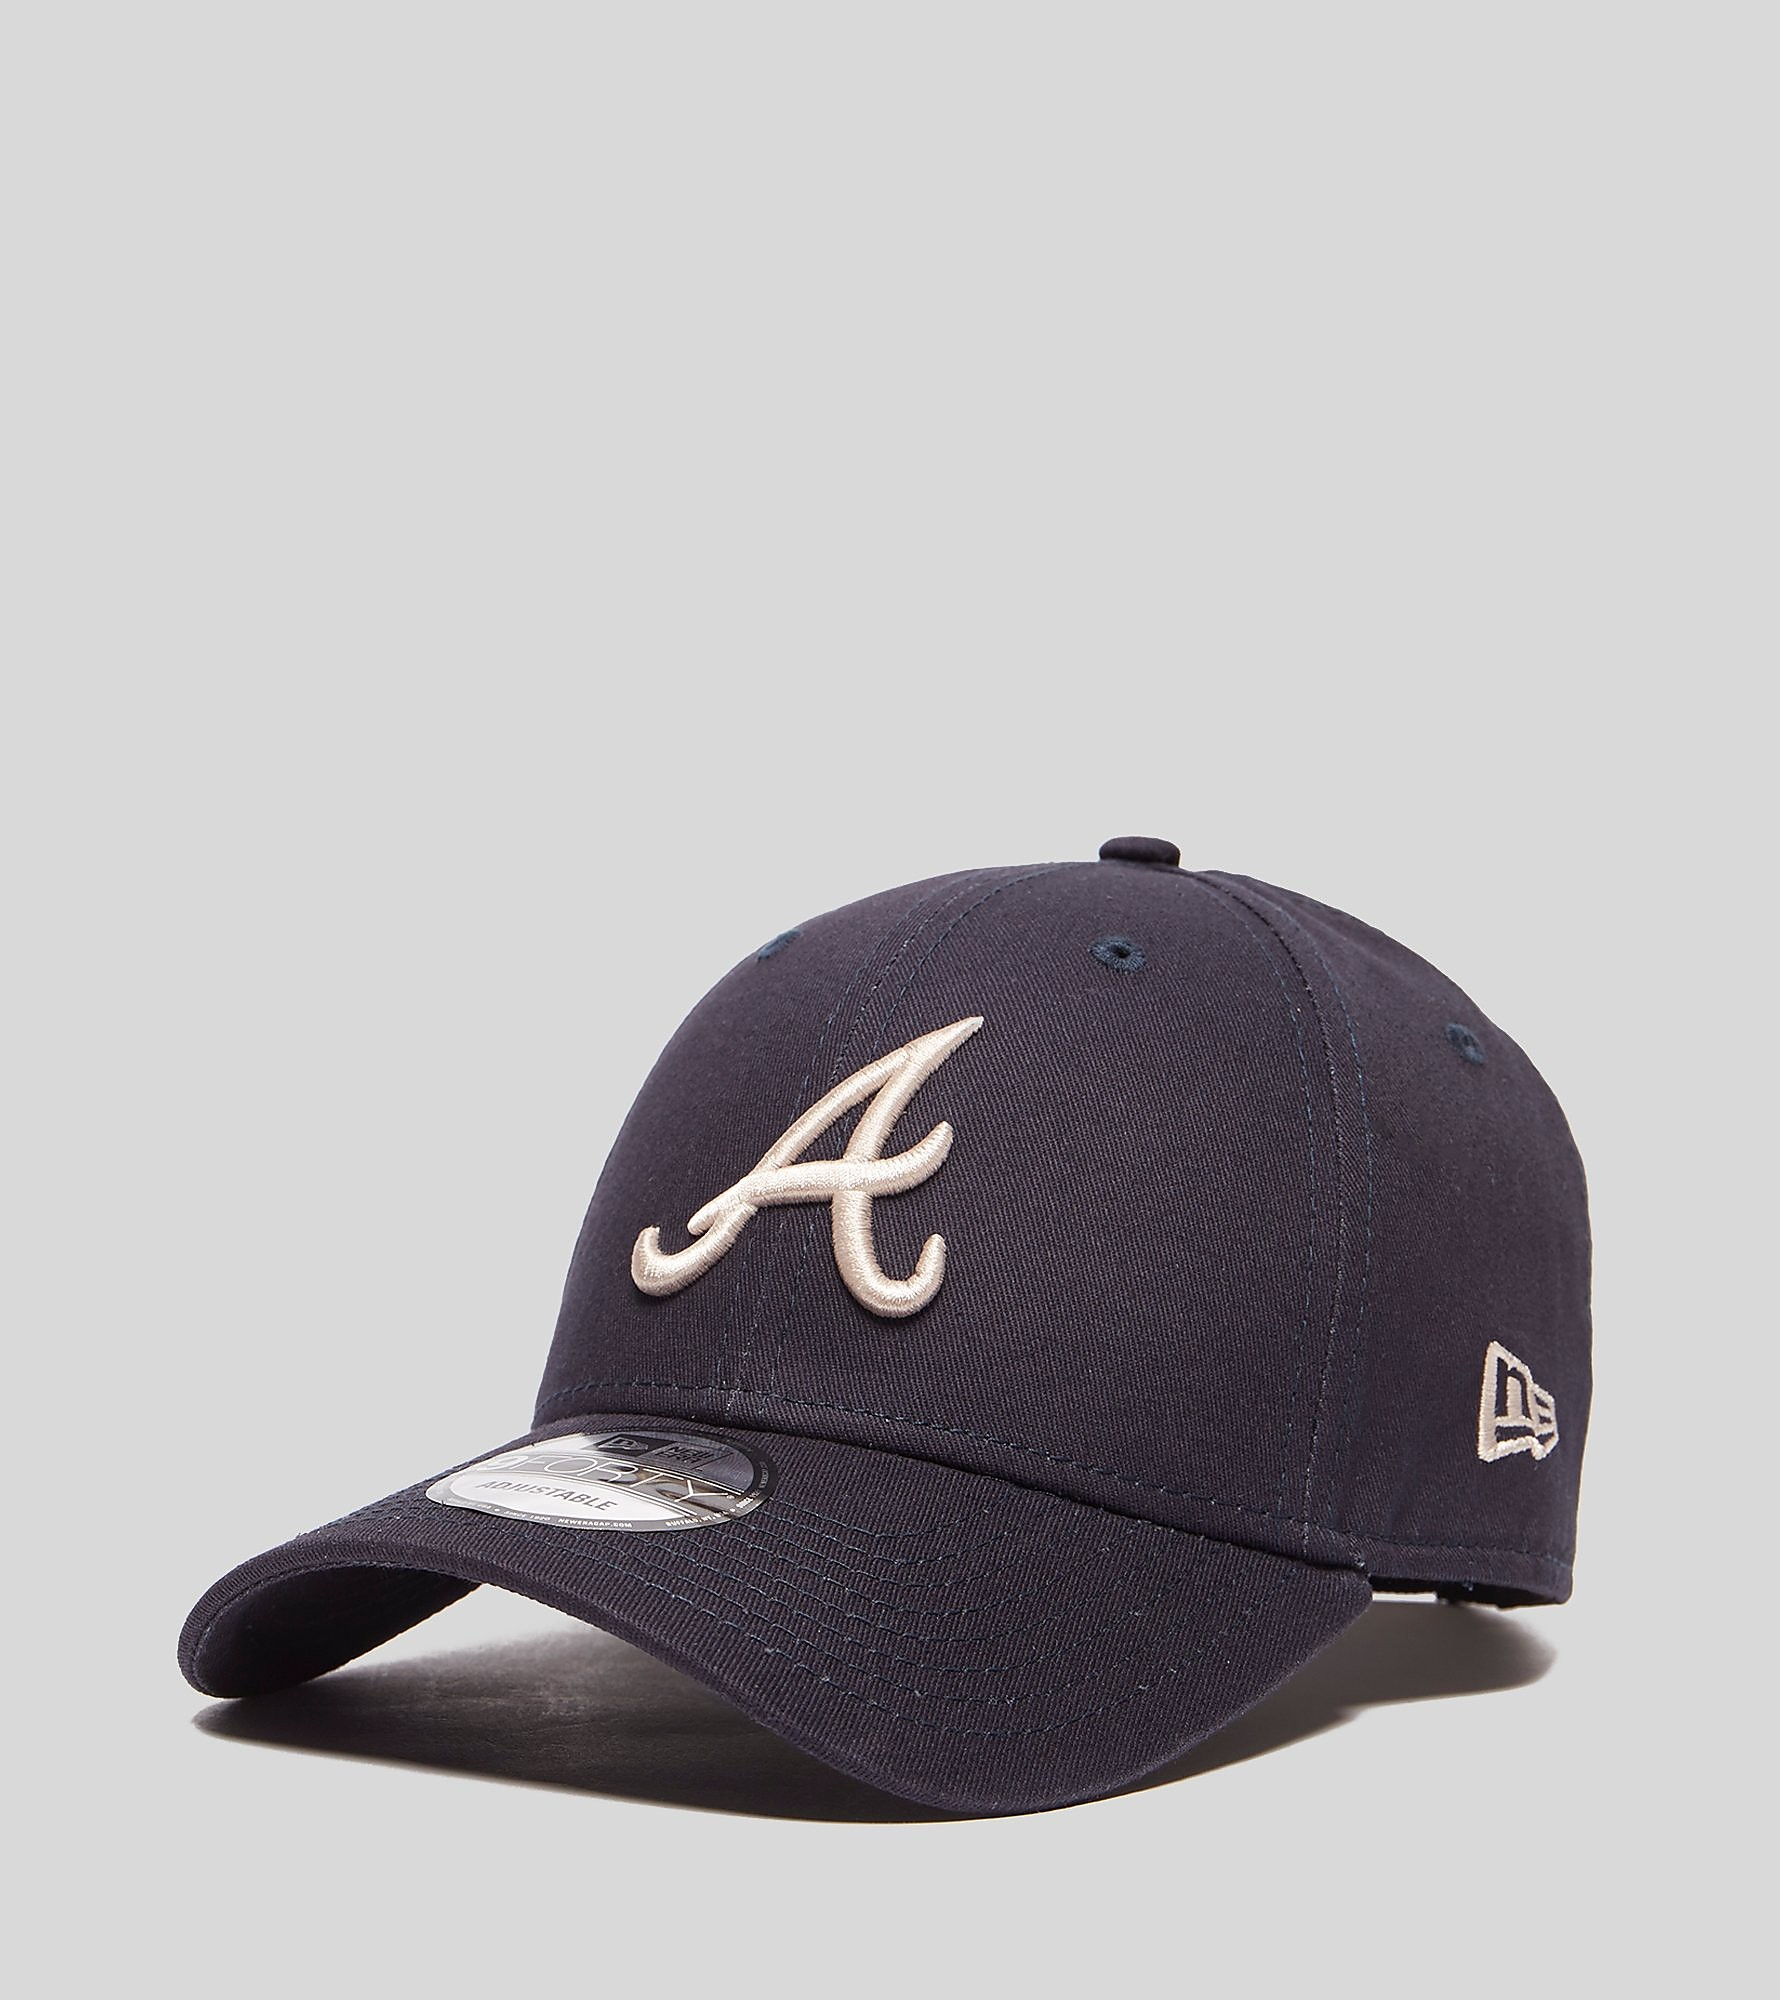 New Era 9FORTY Atlanta Braves Cap